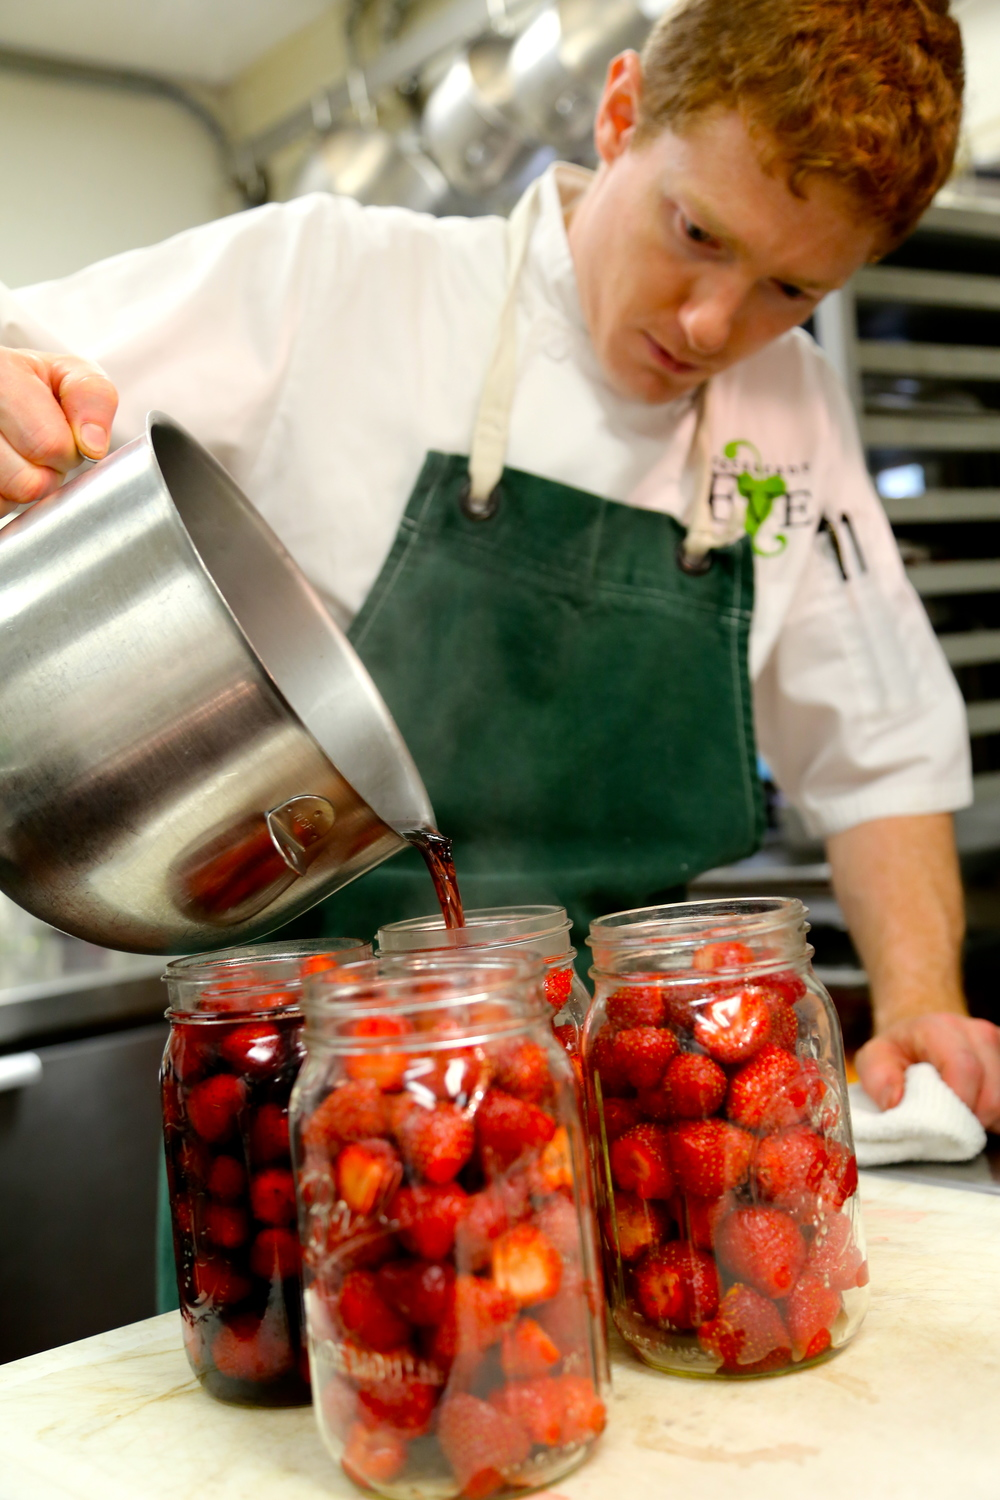 Restaurant Eve Chef Josh & Strawberries.jpg